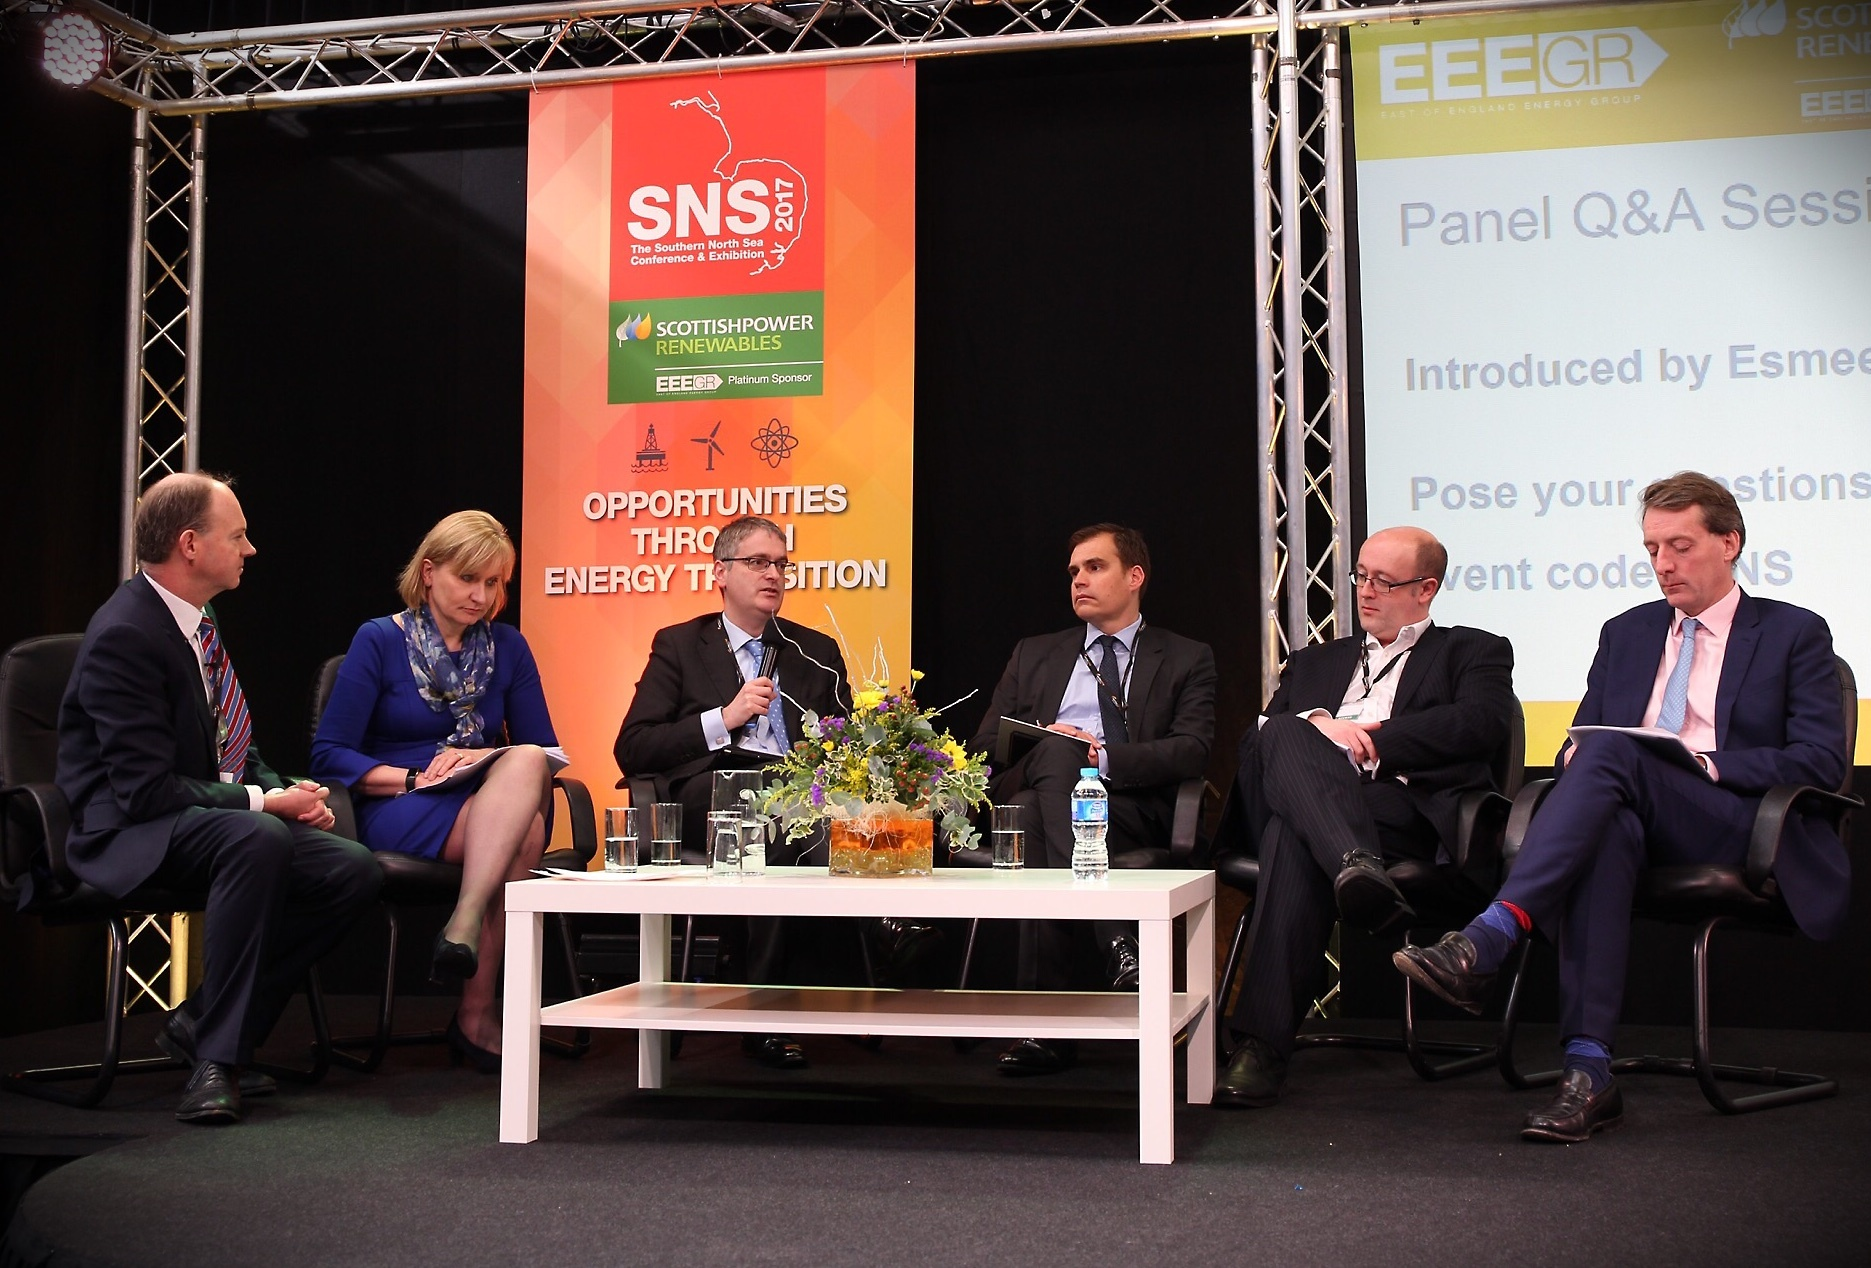 Speakers at the first panel session at SNS 2017. Photo credit: TMS Media.